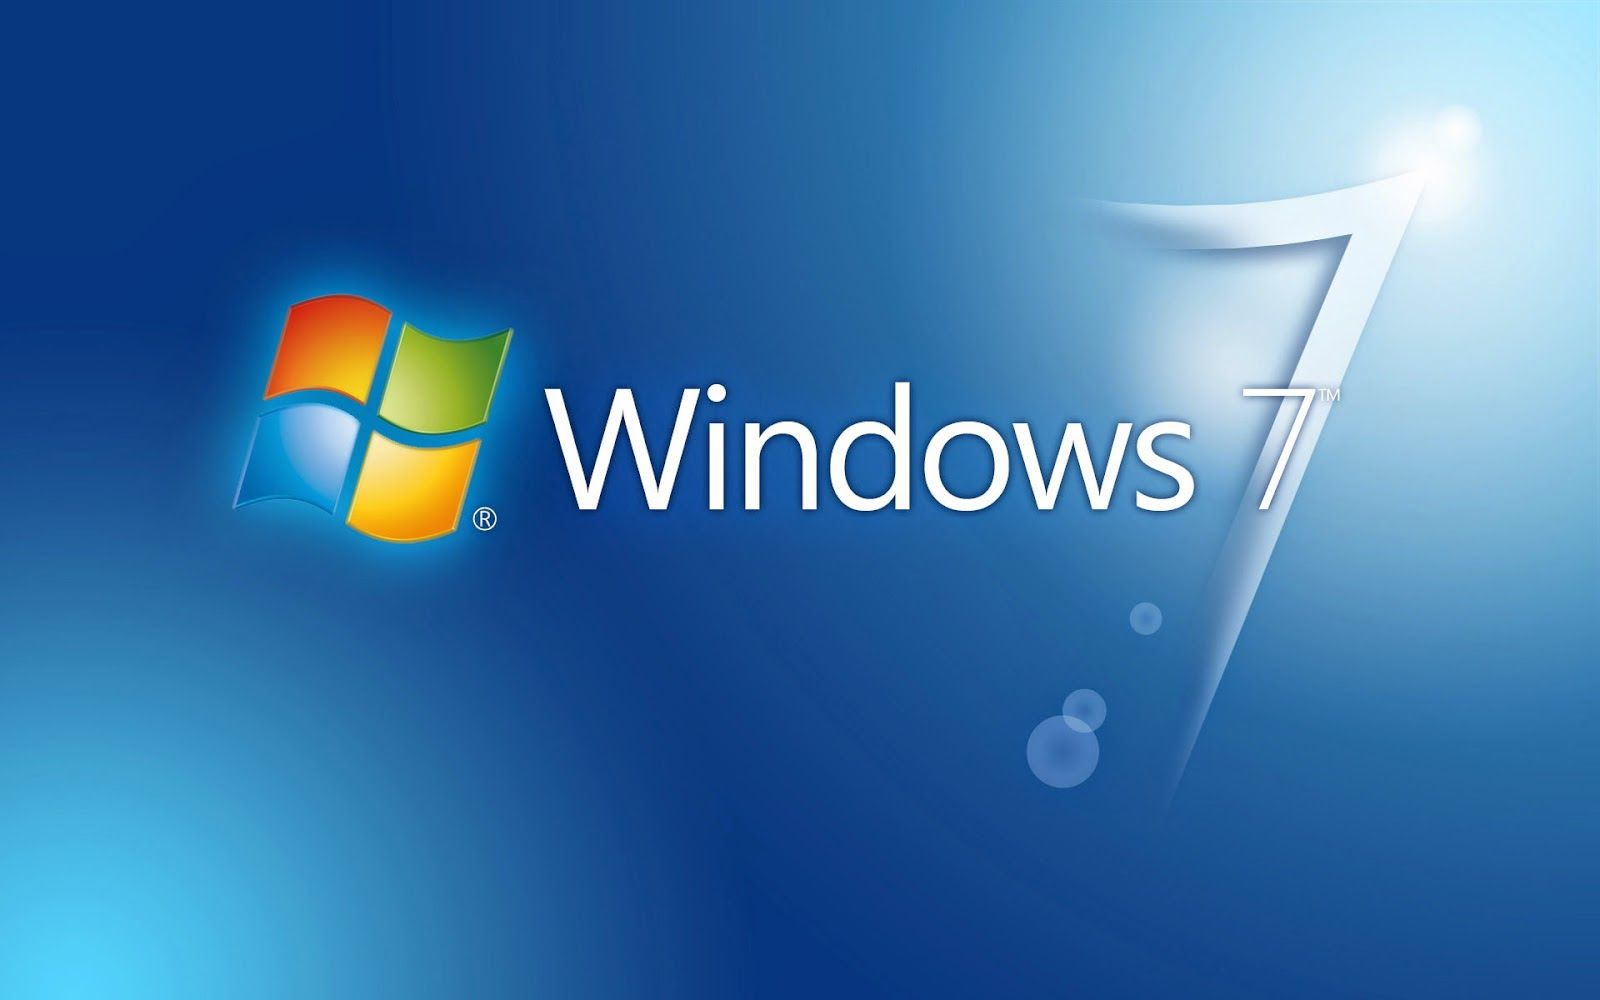 Live wallpaper for windows 7 32 bit free download